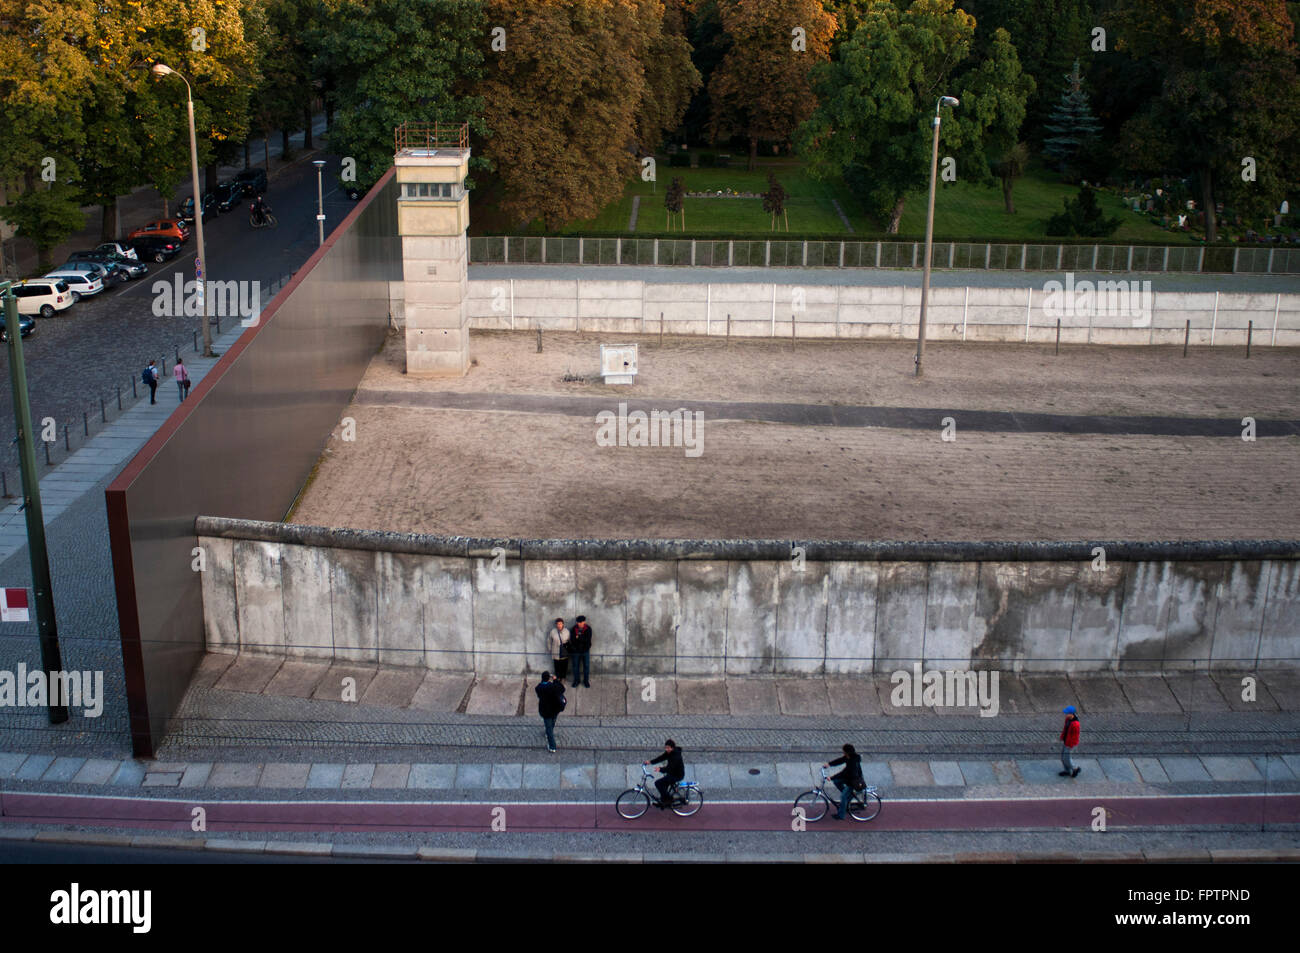 The Berlin Wall at Bernauerstrasse. The Berlin wall memorial in the Bernauerstraße. The Berlin Wall Memorial - Stock Image